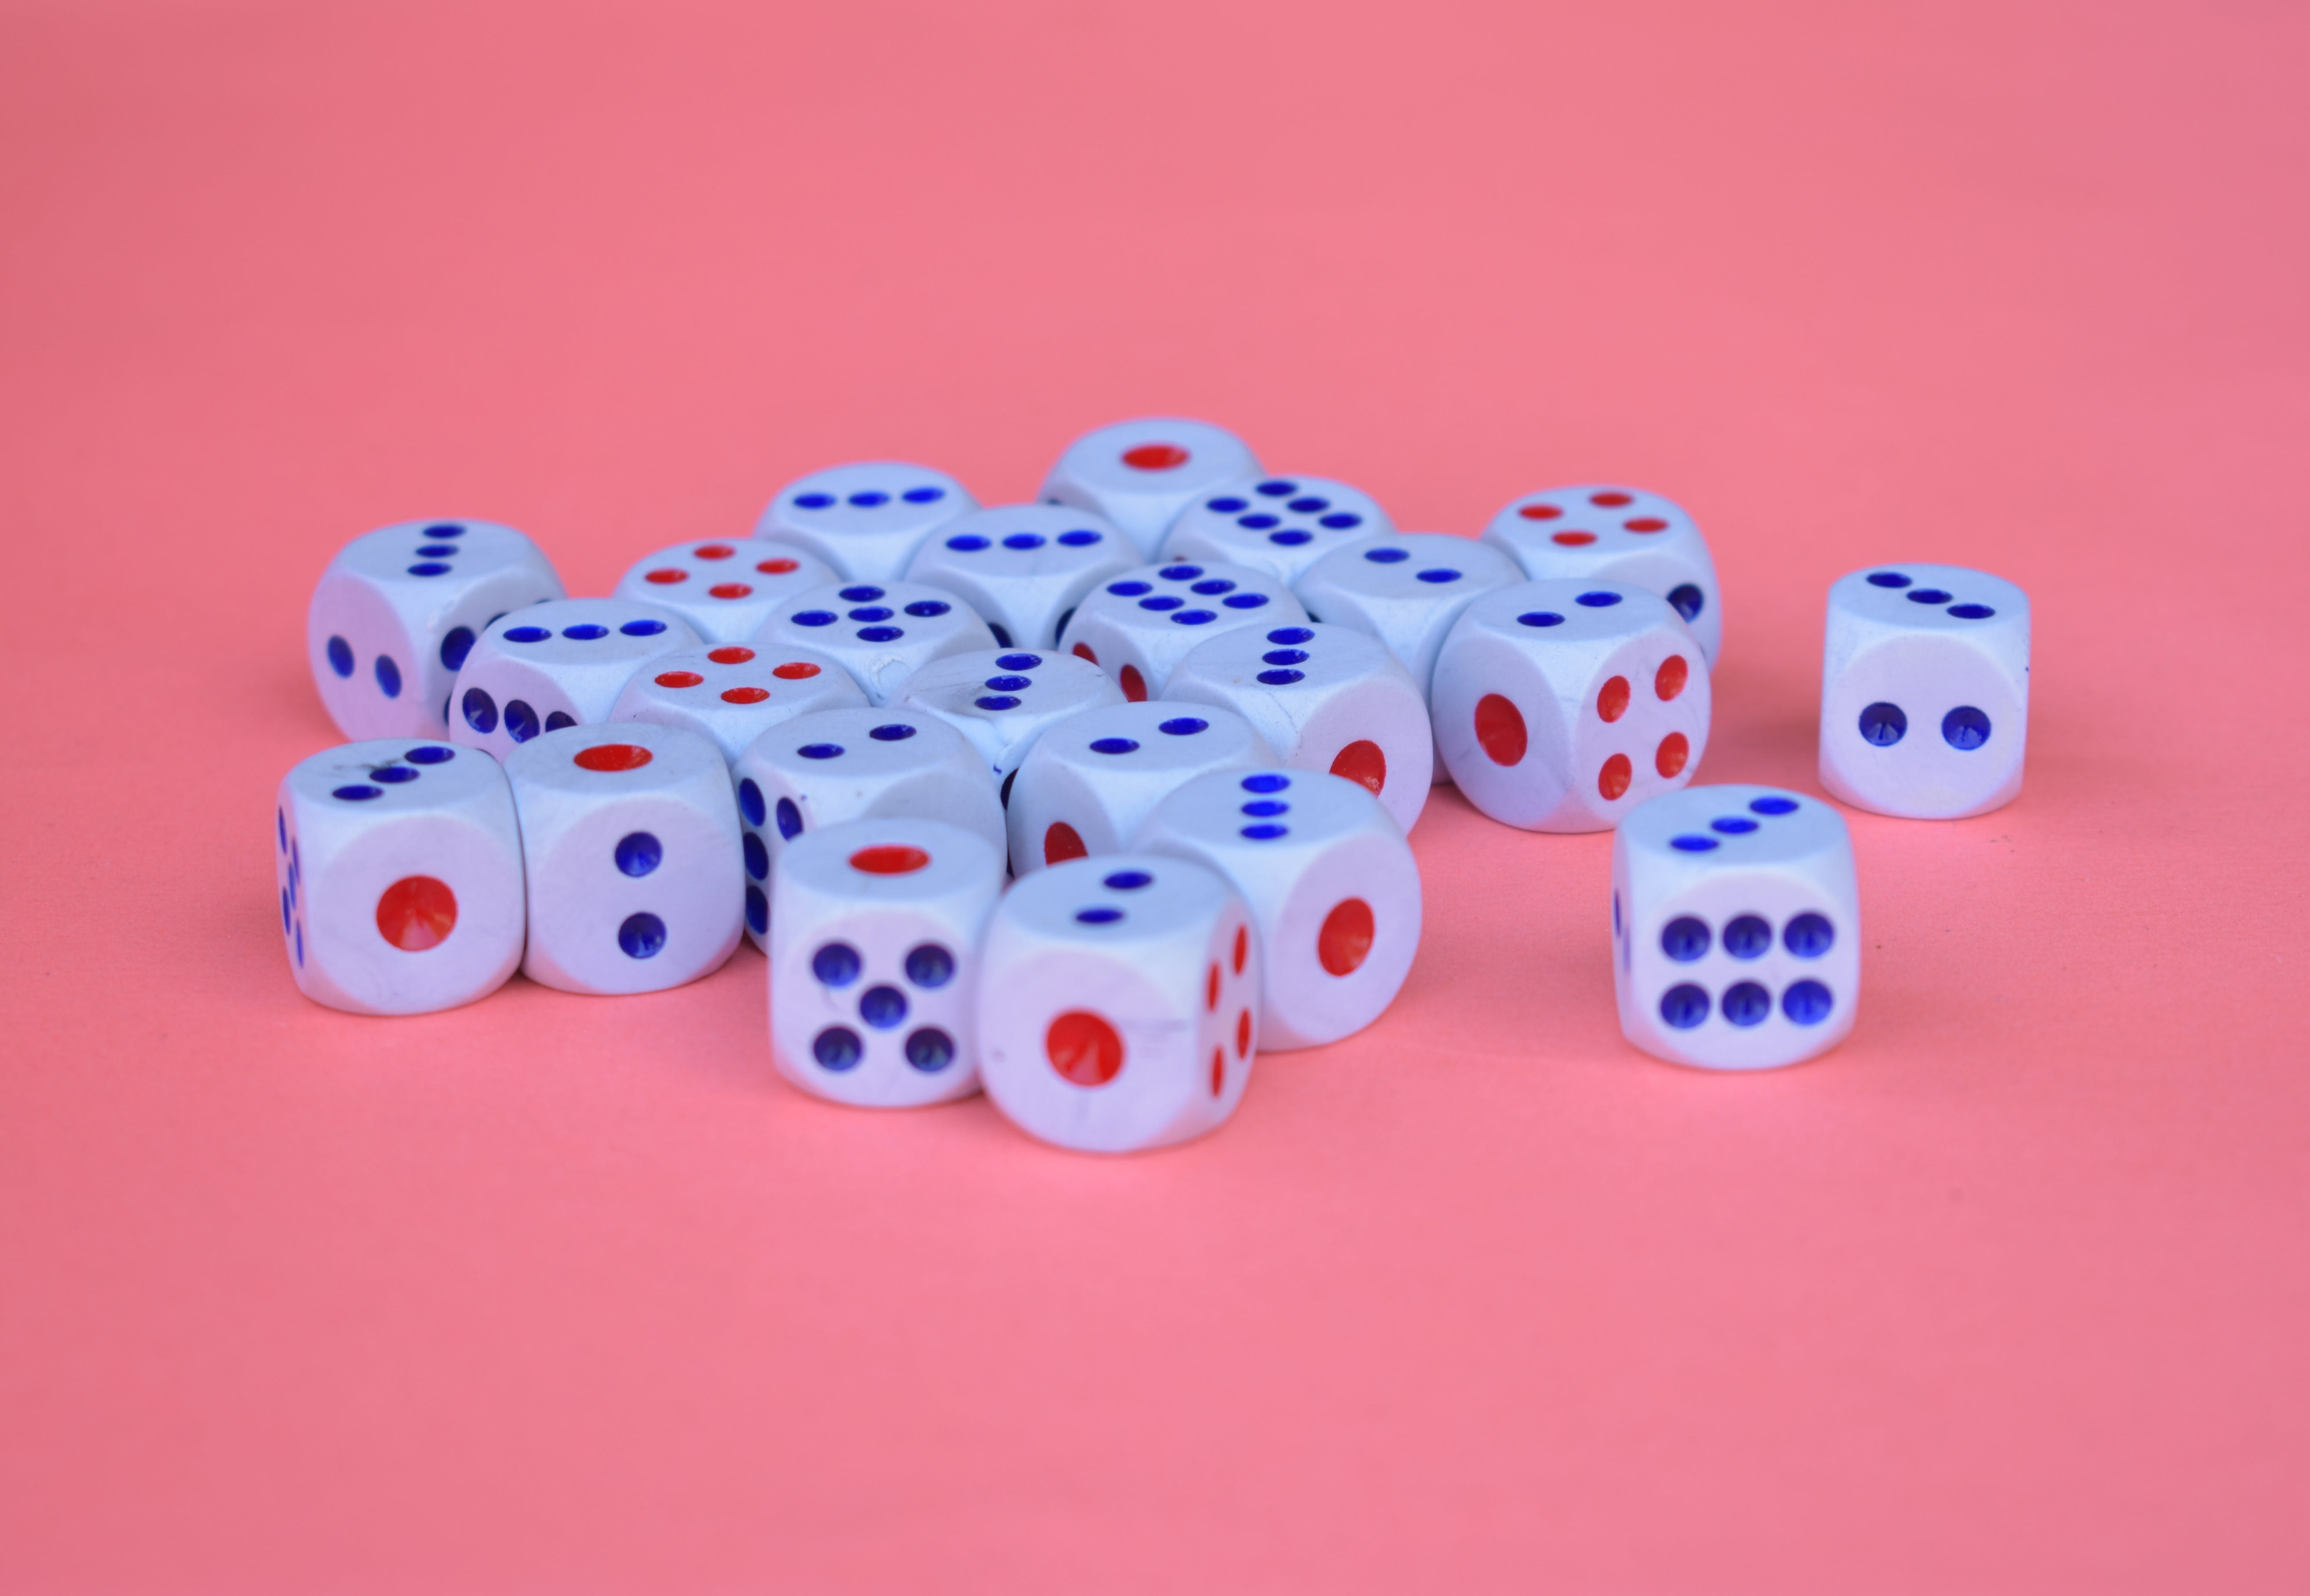 Blue, Red And White Dice